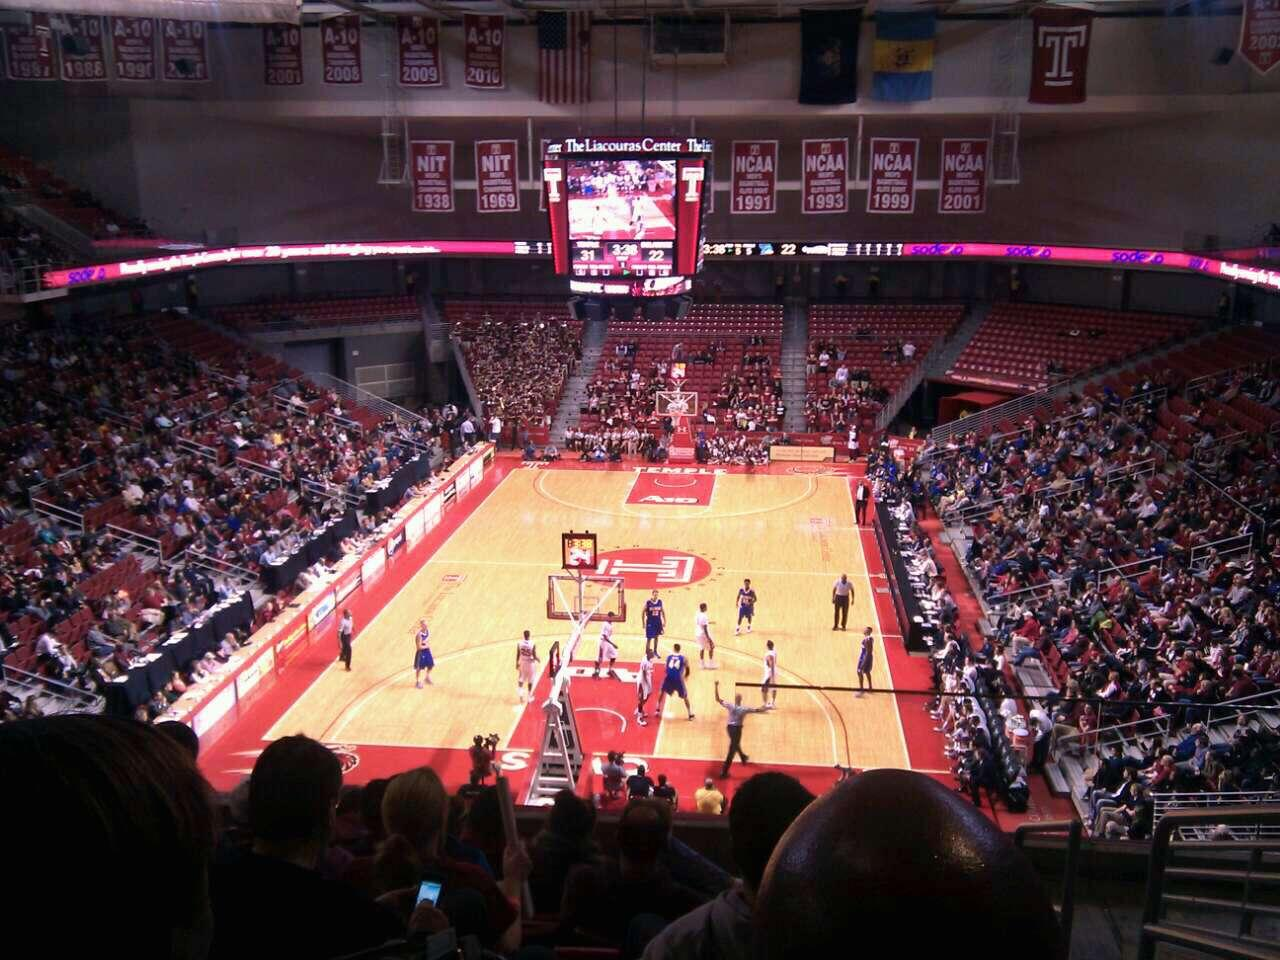 Liacouras Center Section 208 Row h Seat 1